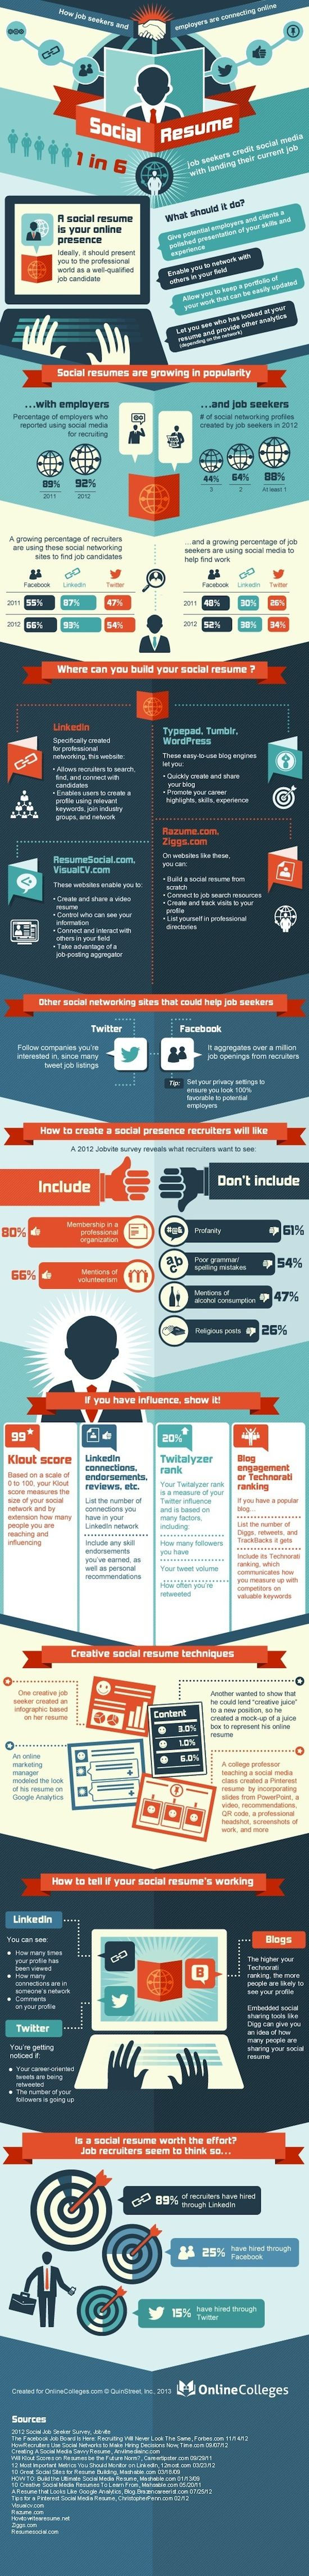 Job Seeker ? Look at that really good summary for using Social Medias. #Infographic #Job #Hunting #Hiring #SoMe